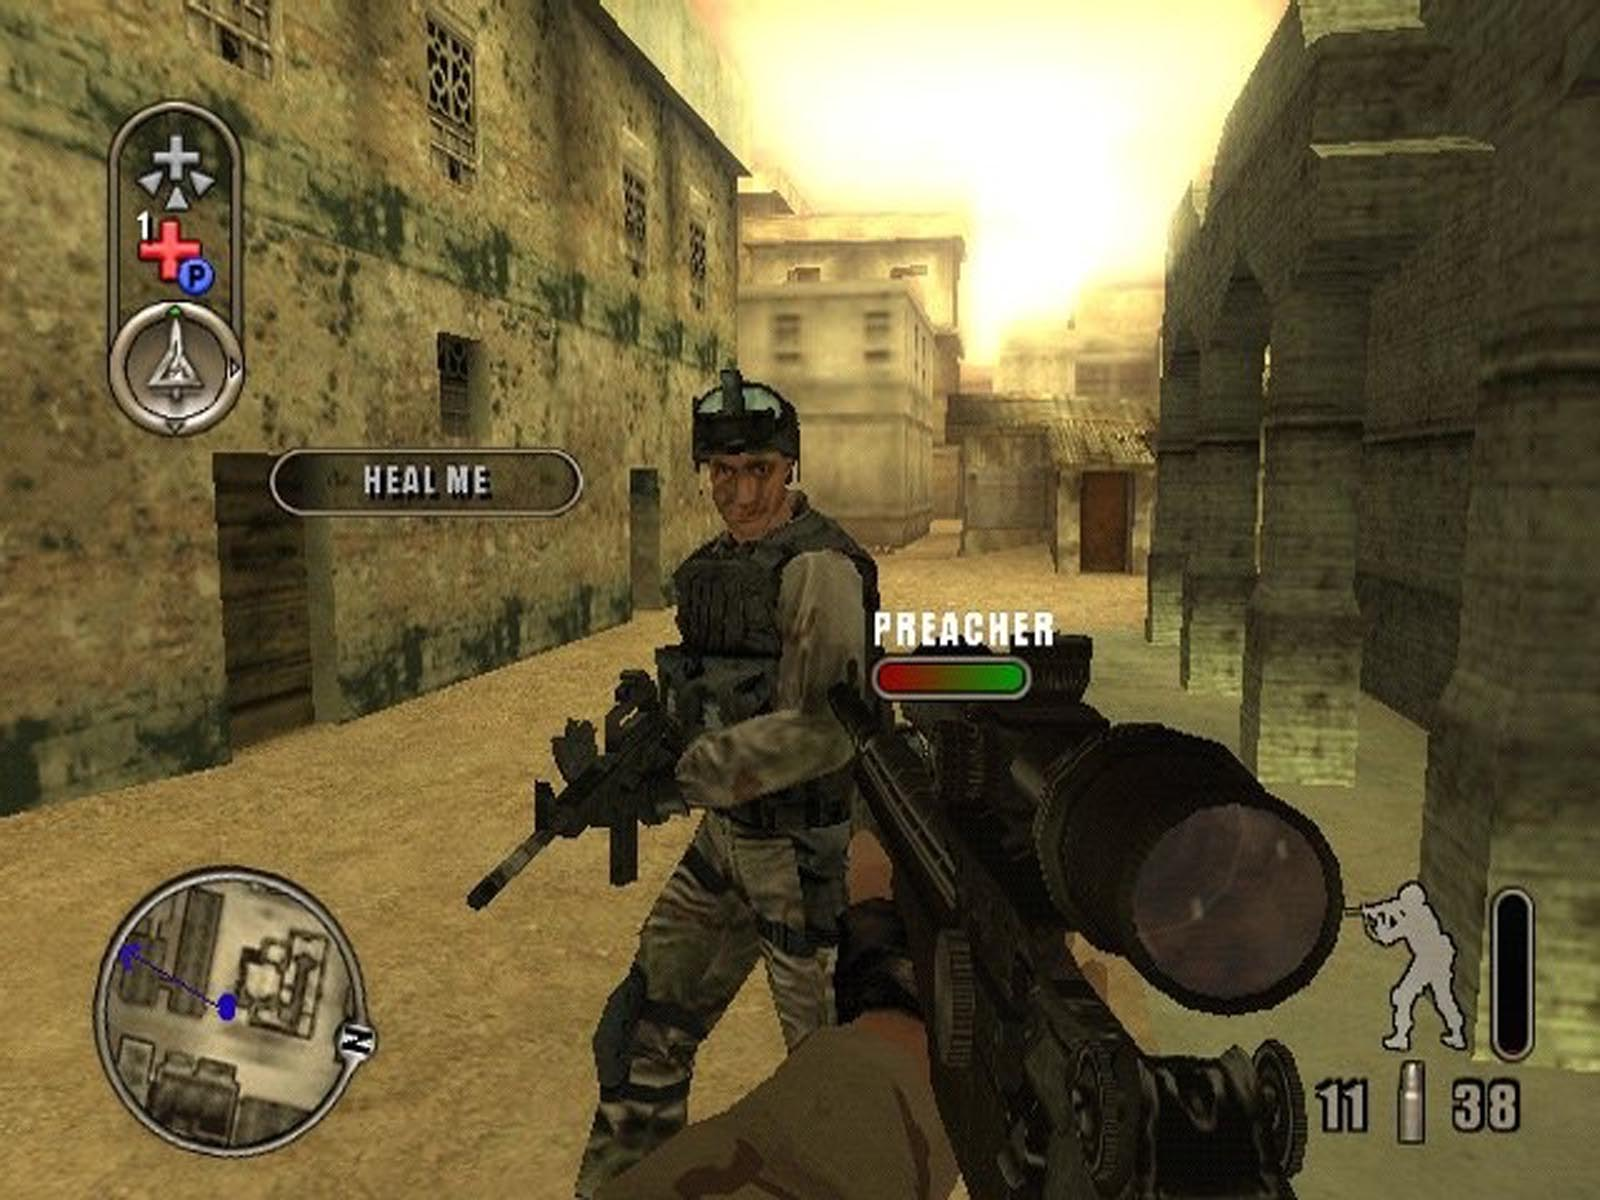 game black psp iso emuparadise